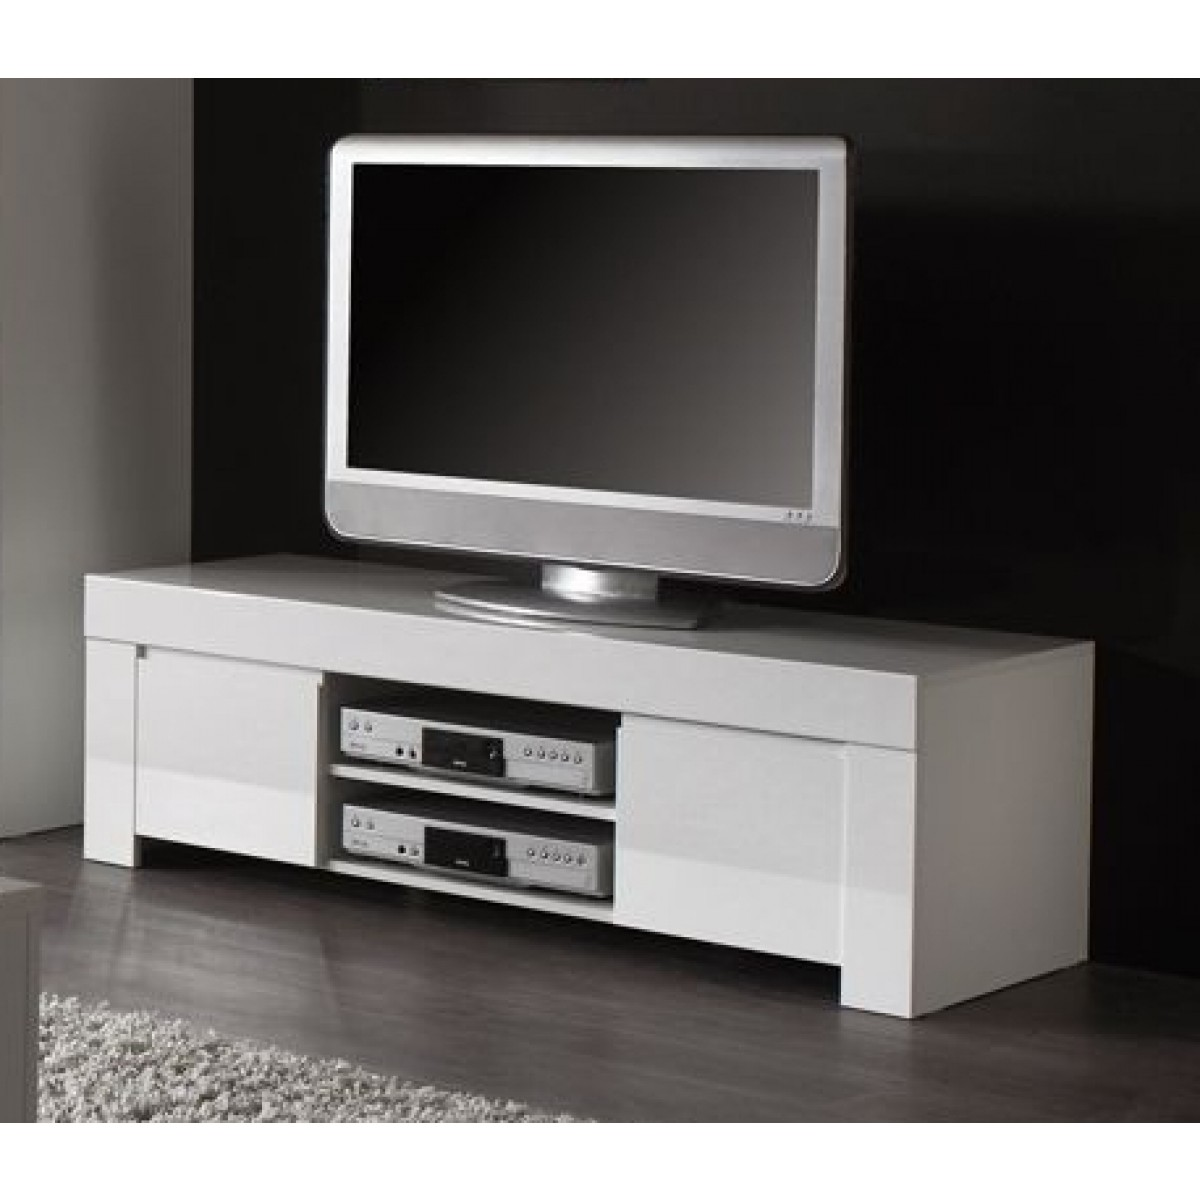 meuble tv alinea blanc laque sammlung von design zeichnungen als inspirierendes. Black Bedroom Furniture Sets. Home Design Ideas